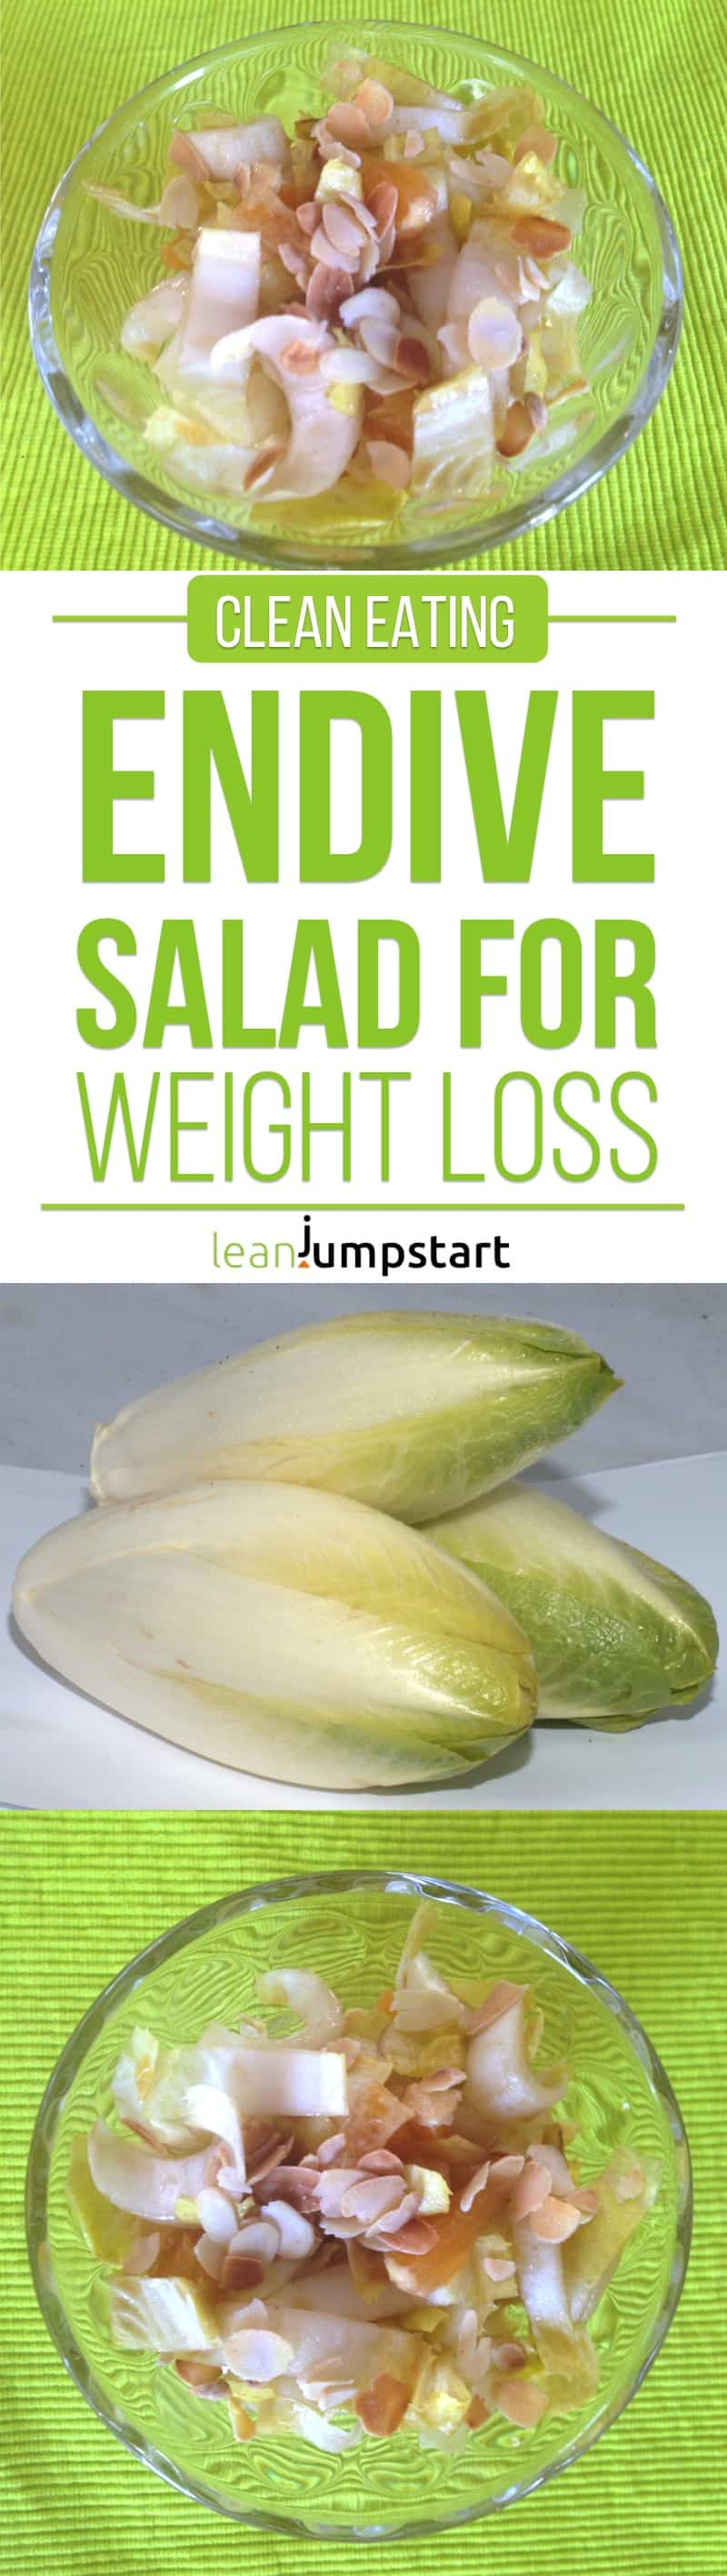 endive salad recipe for weight loss: quick and easy